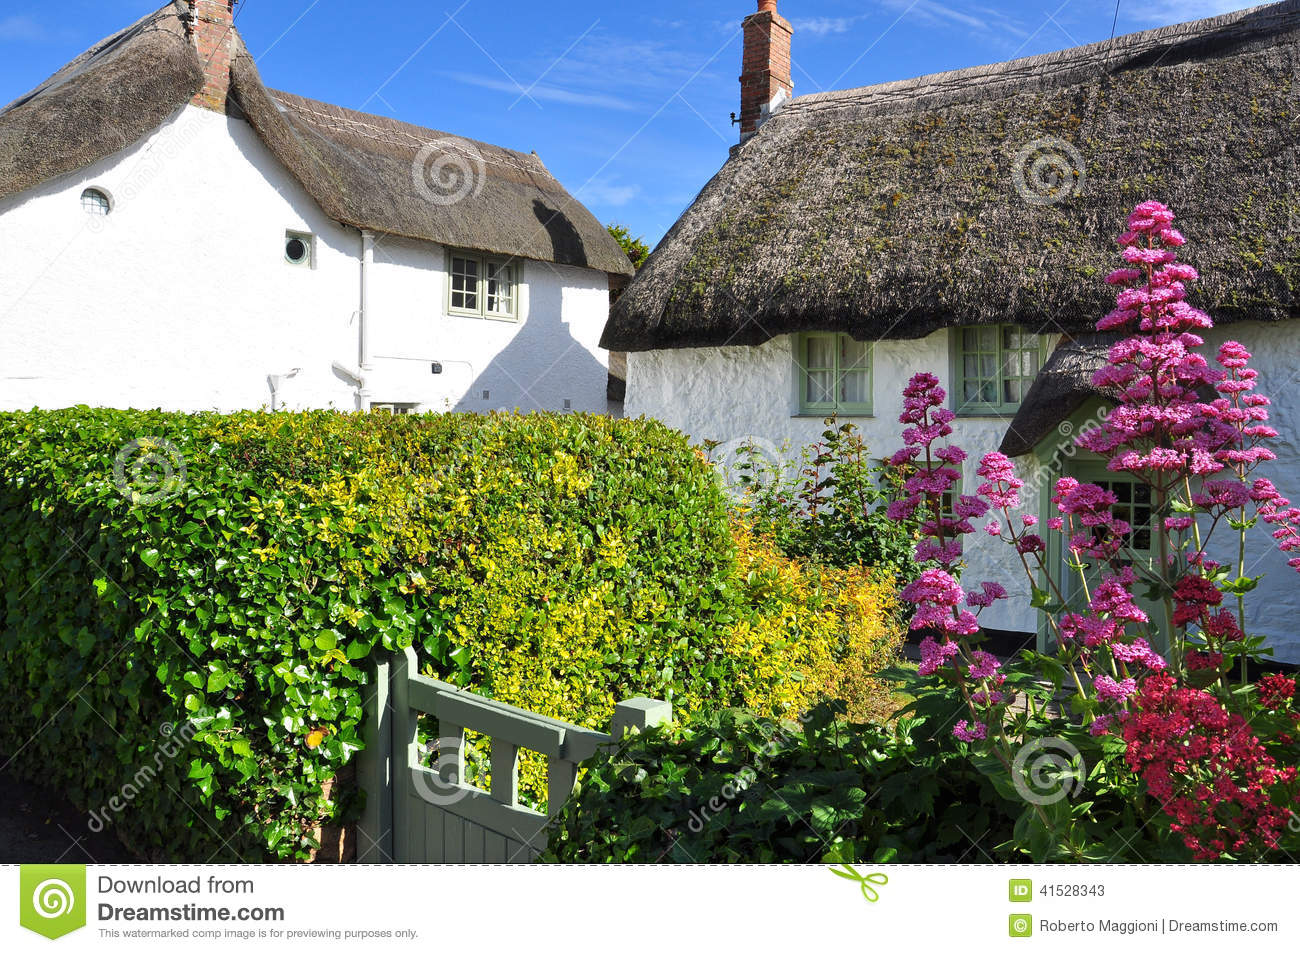 cottages with decoration arrangement rent ideas for remodel decor cornwall about designing simple home